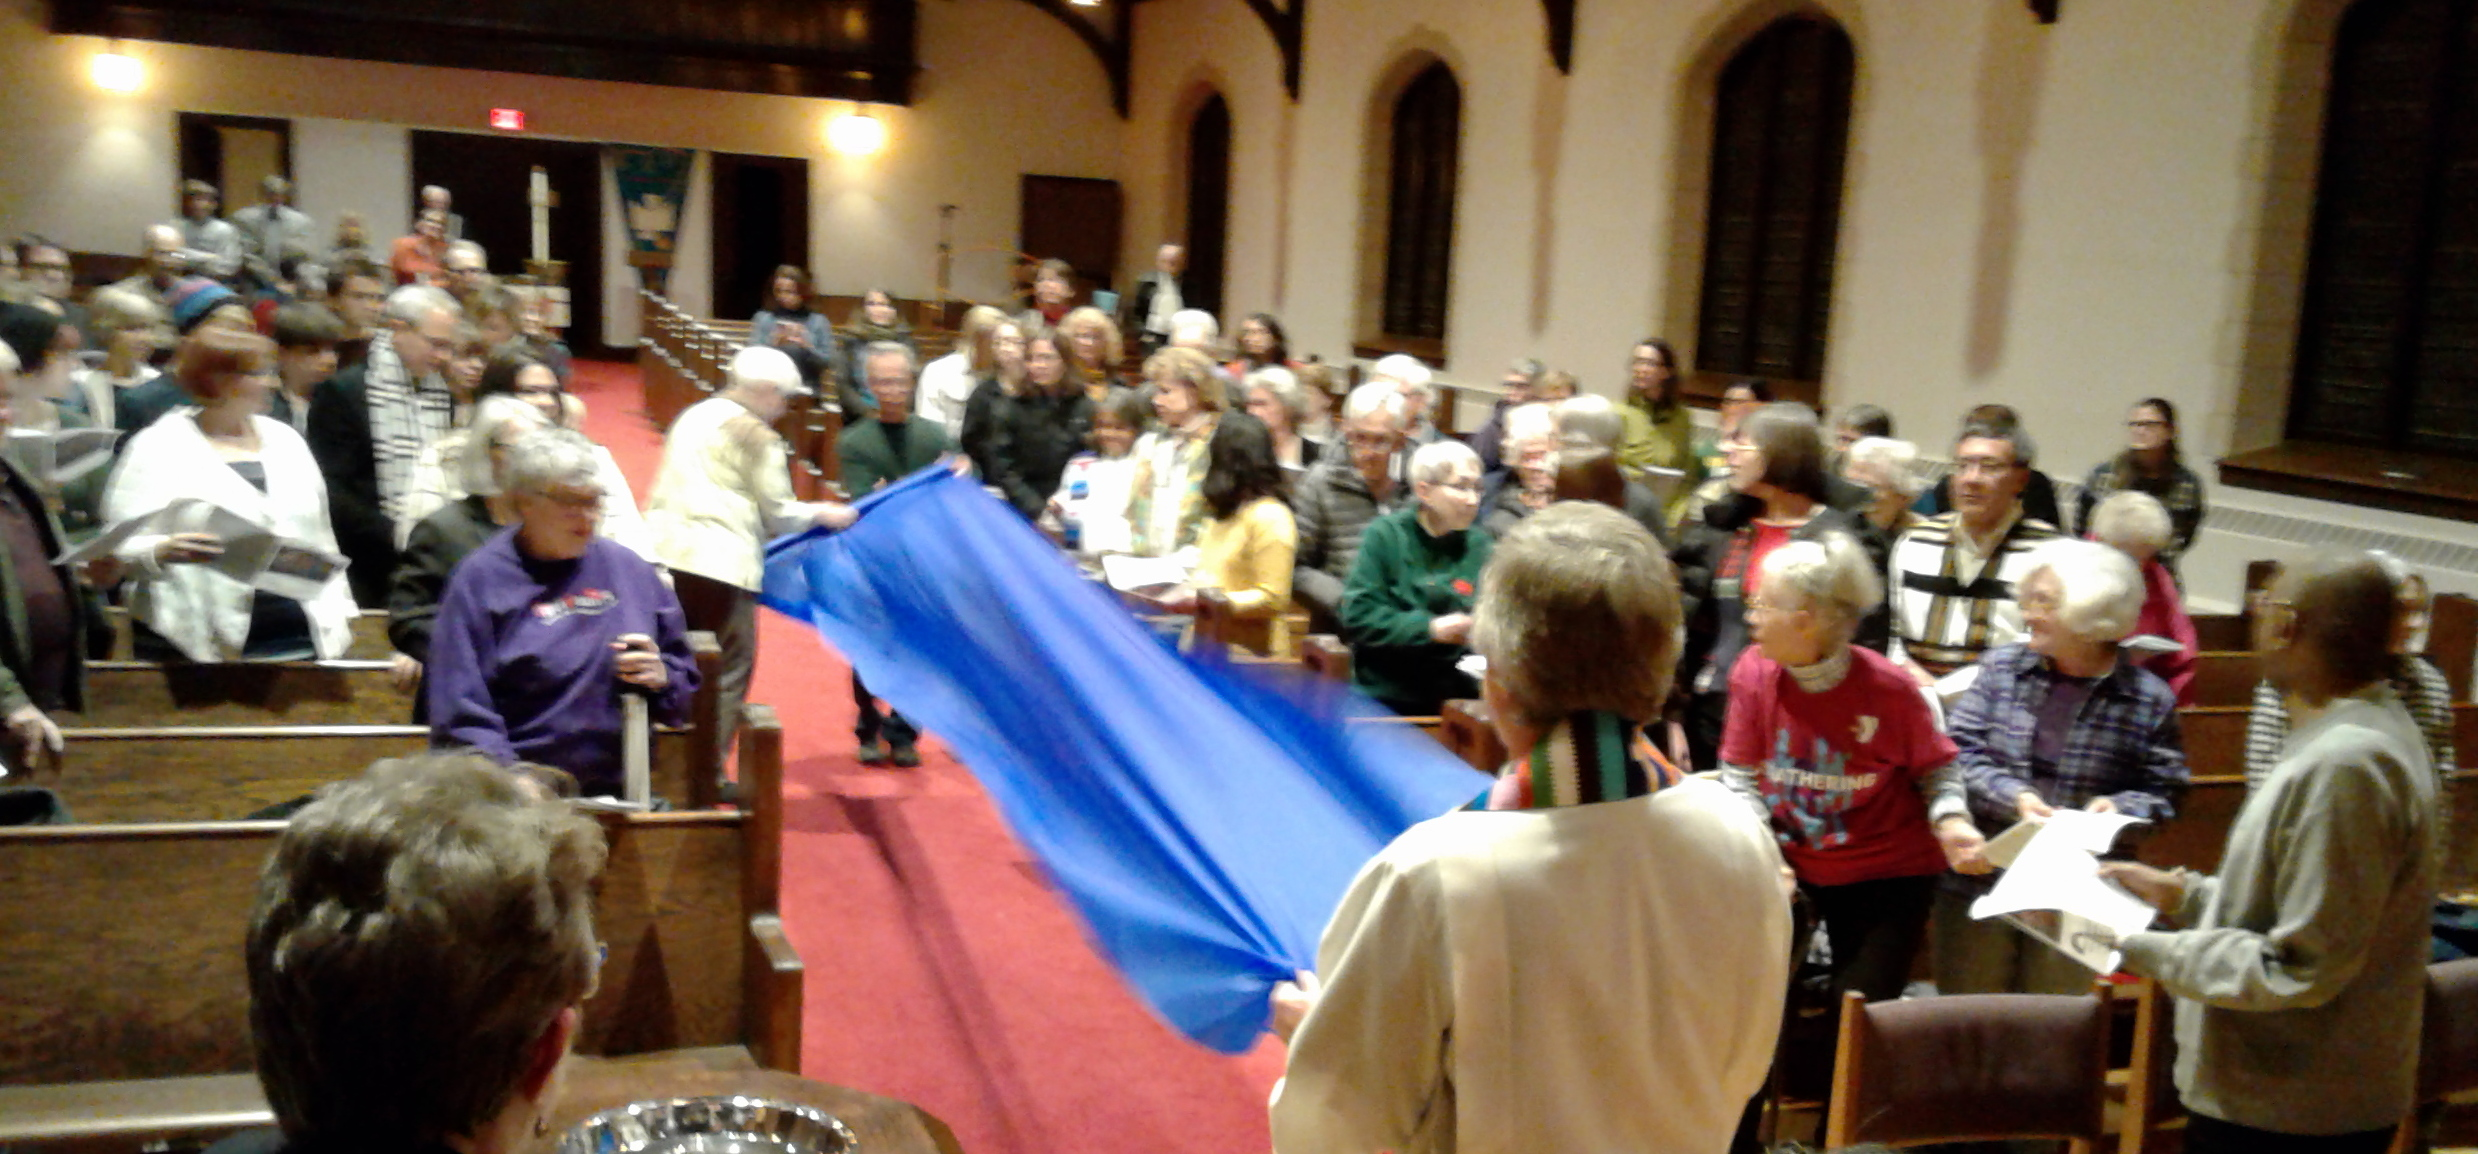 A Native American Celebration on Thanksgiving Eve at Lutheran Church of the Redeemer in St. Paul.